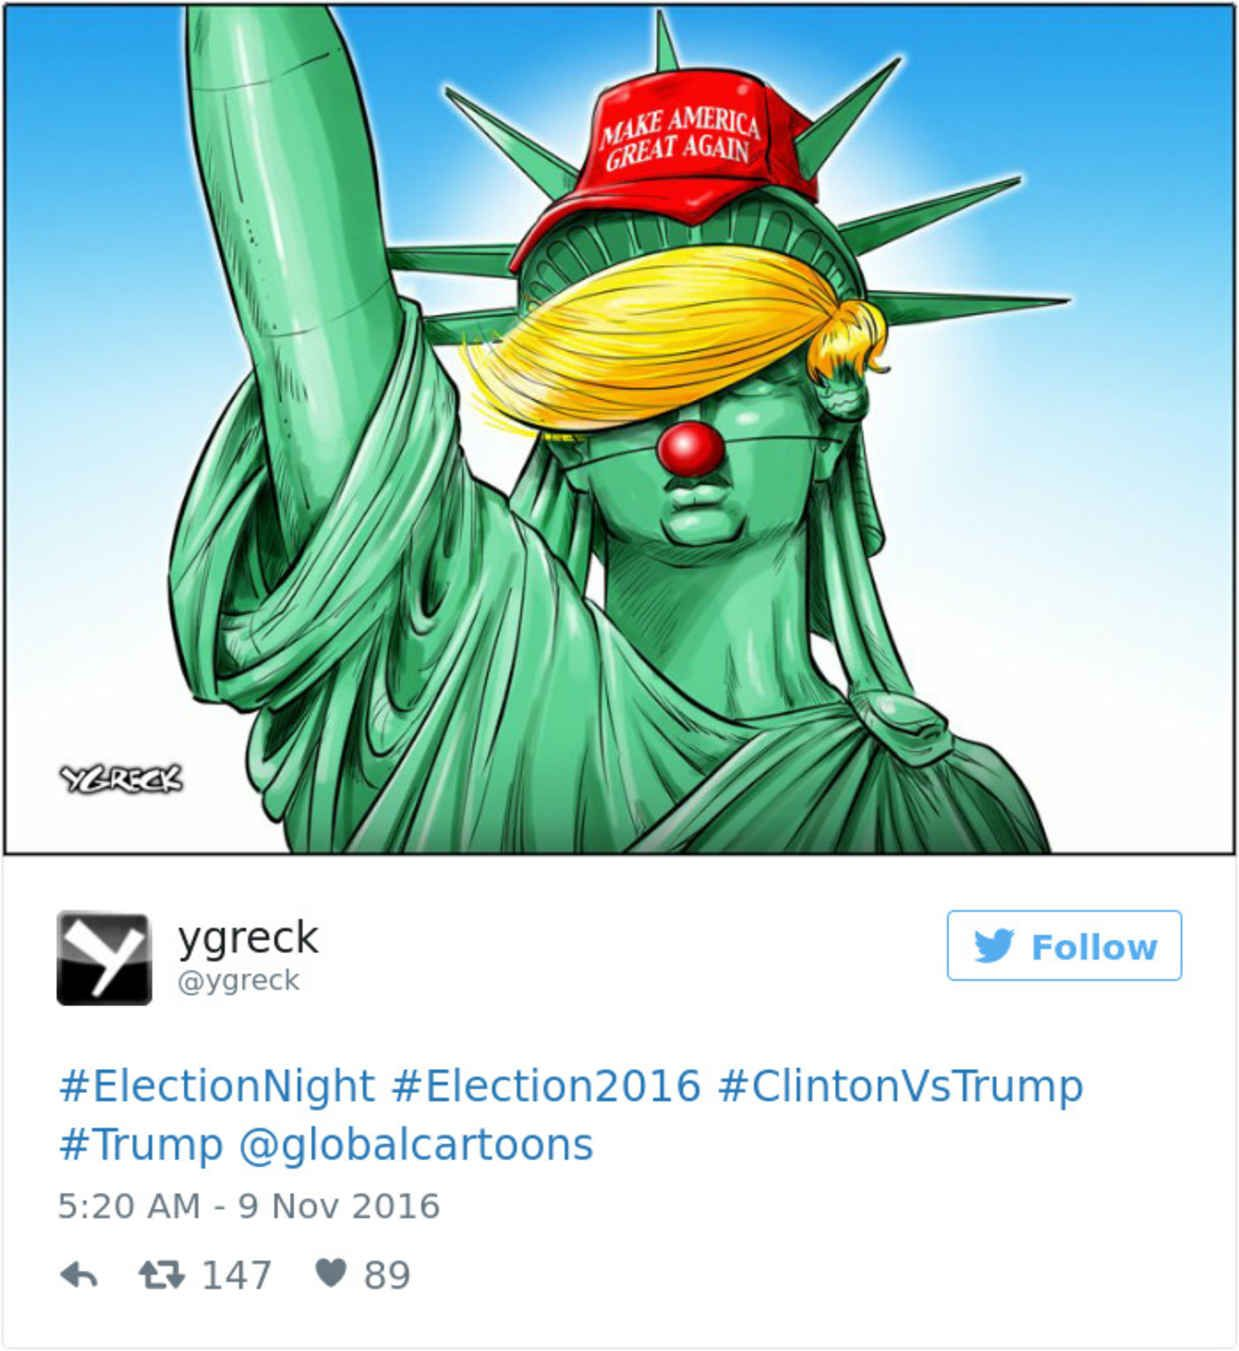 Cartoonists From Around The World Respond To Trumps Election - 22 cartoonists from around the world respond to trumps election win